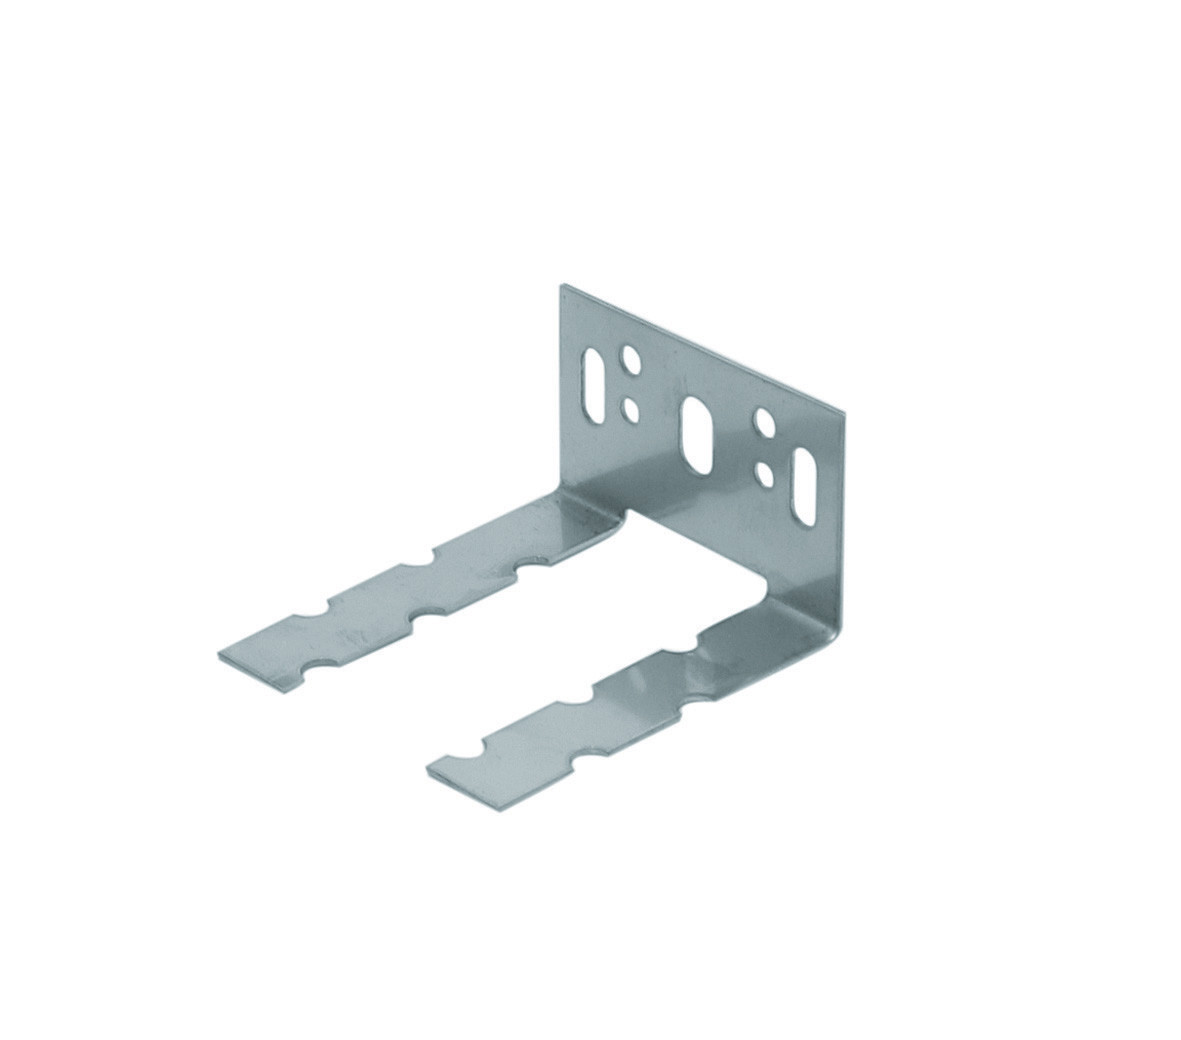 Rigid wall clamp 35x65 60x1,25 316 O.G.